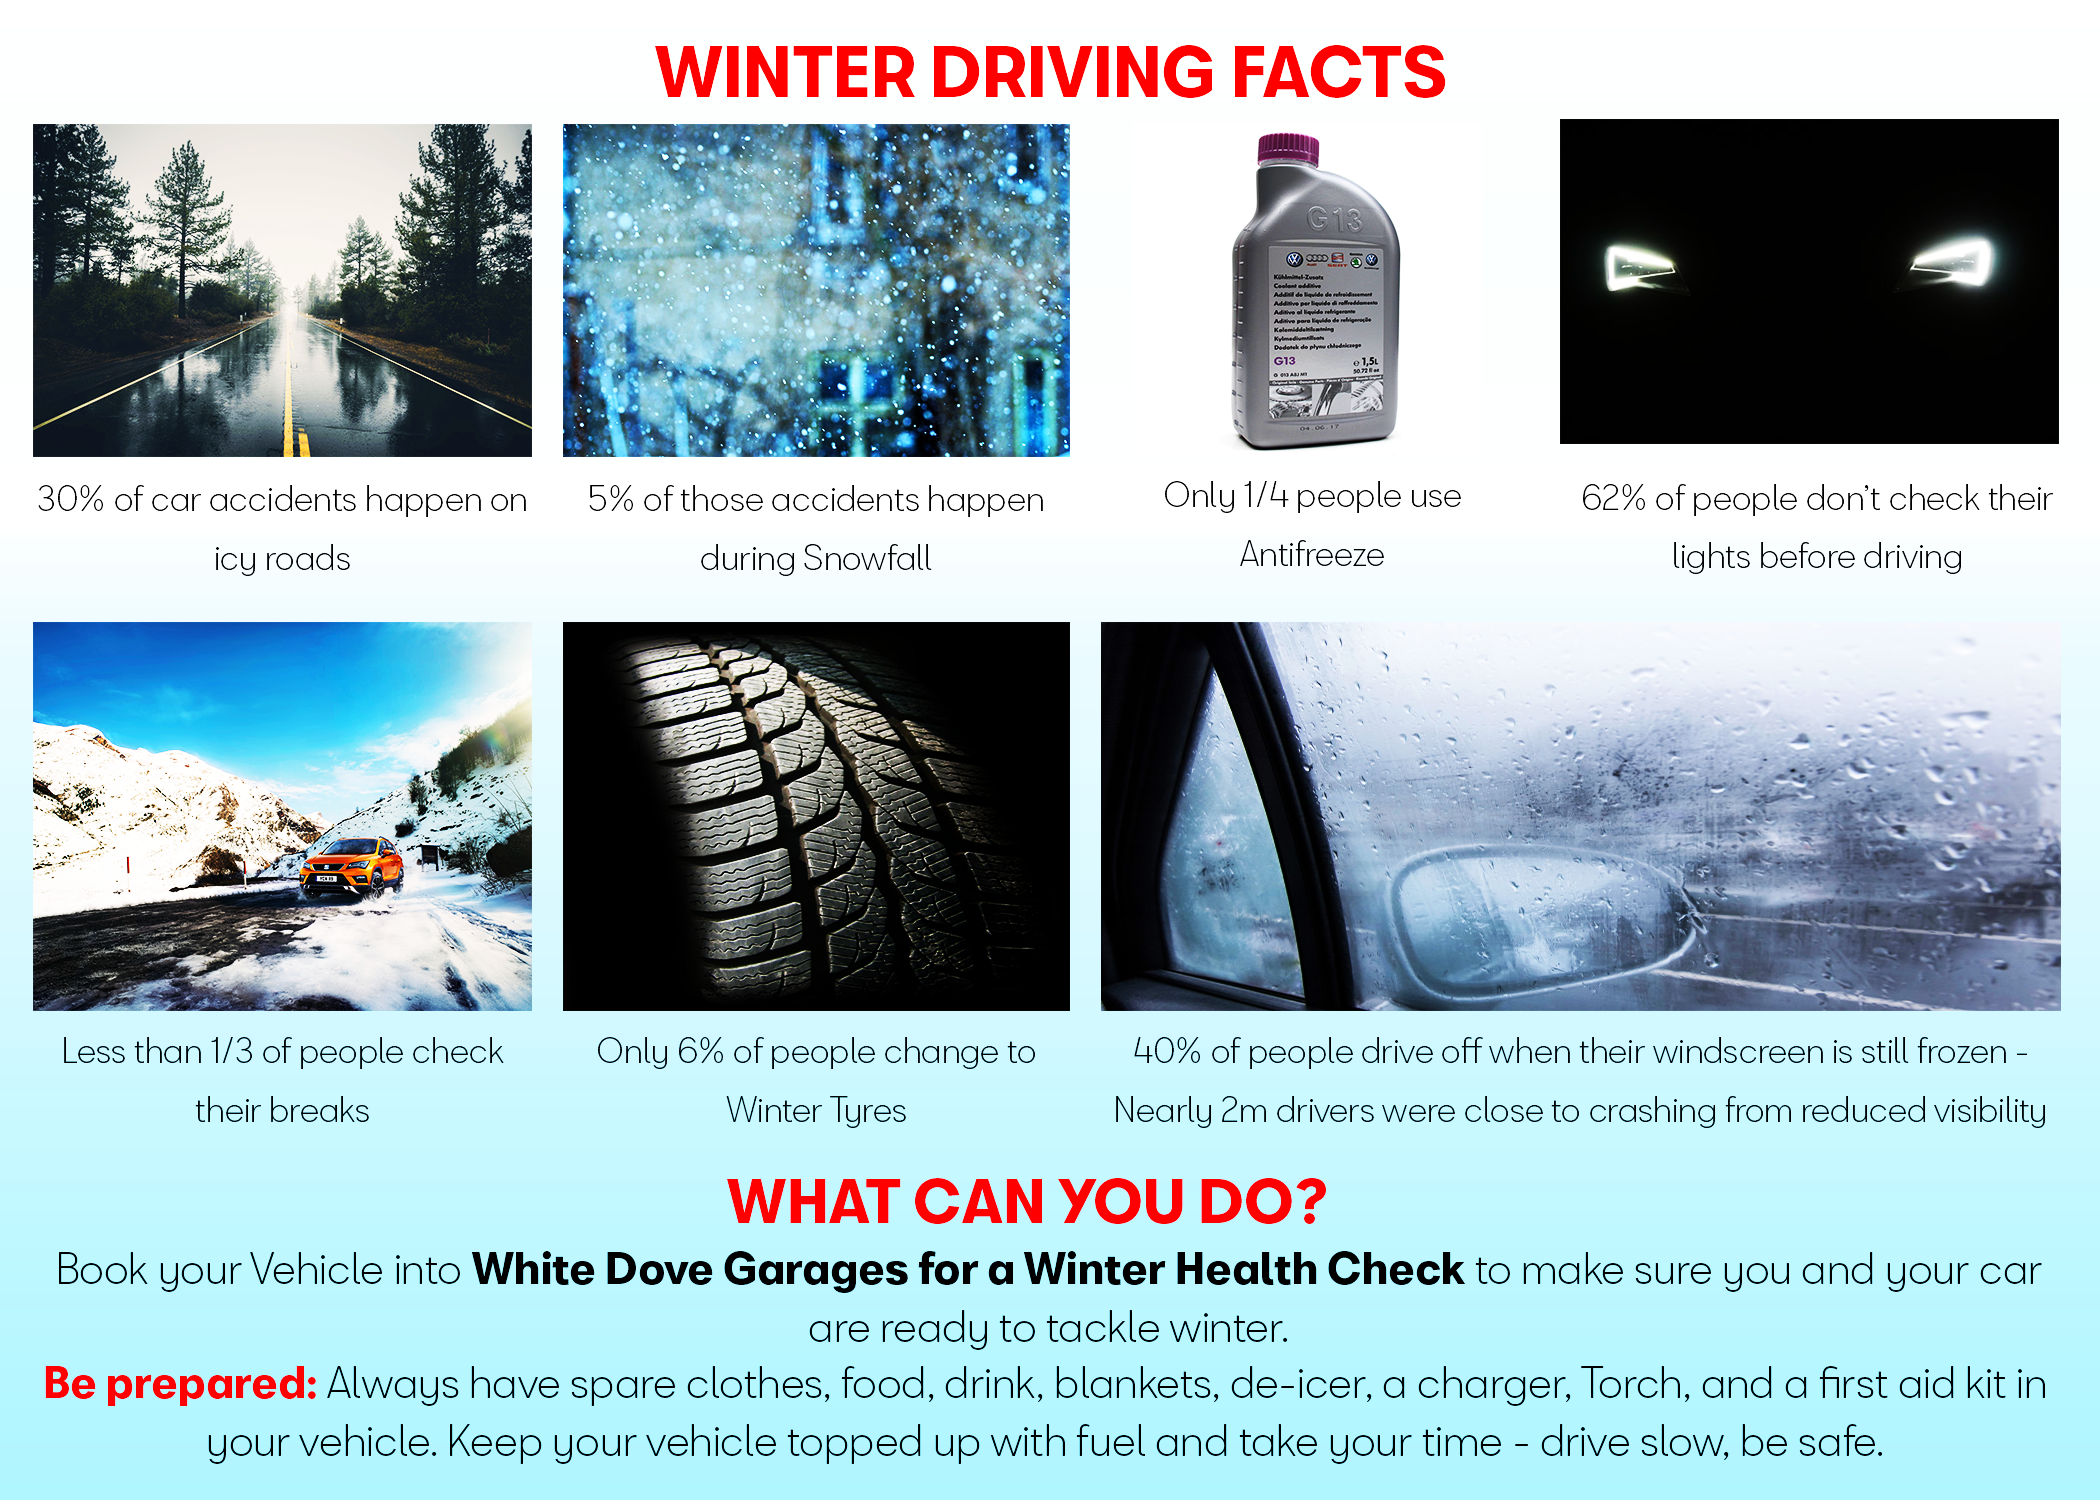 Winter Driving Tips - Staying Safe this Winter